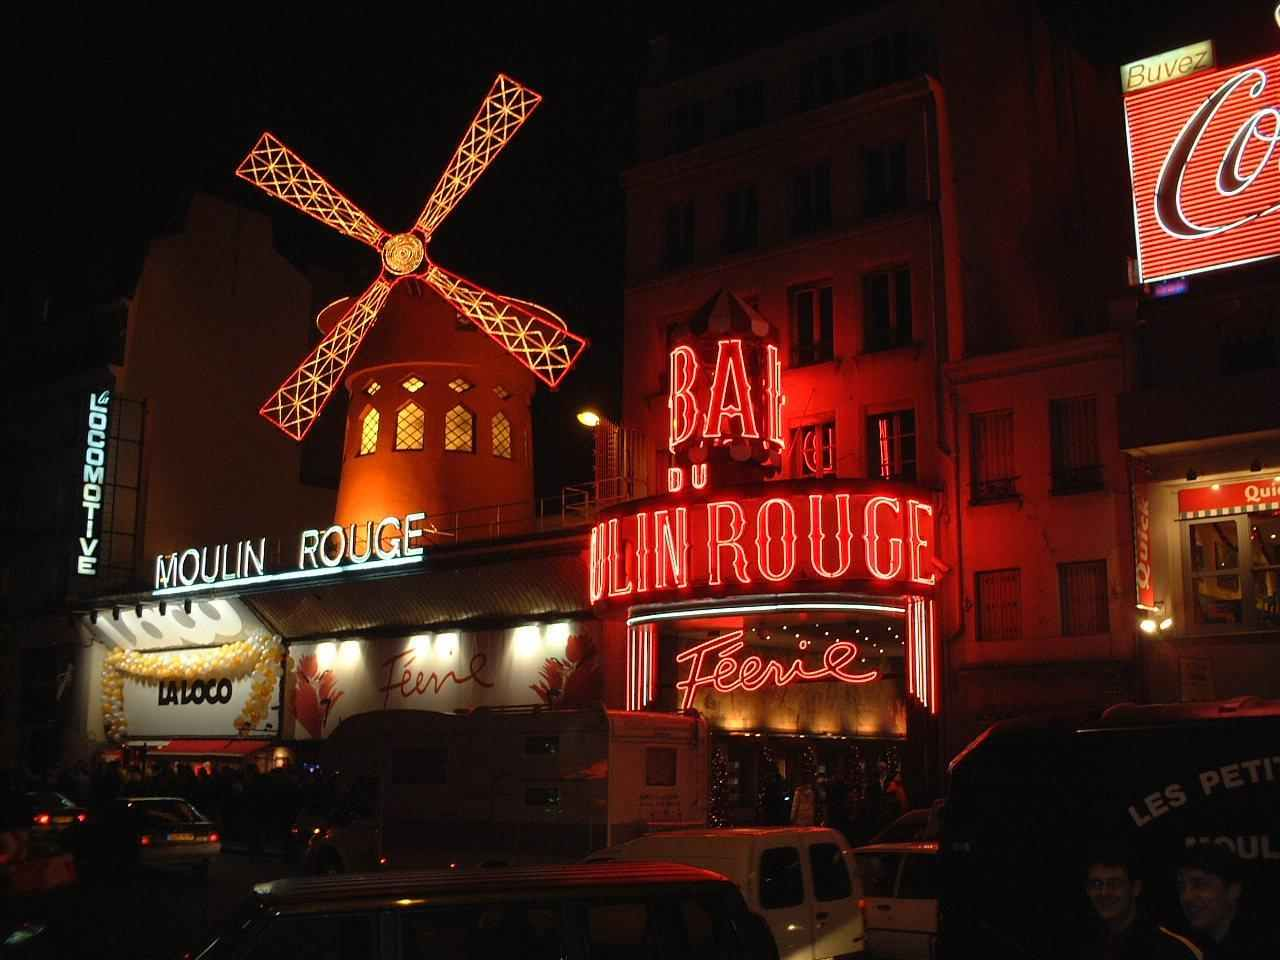 MOULIN ROUGE  LIDO_e0158687_8403172.jpg